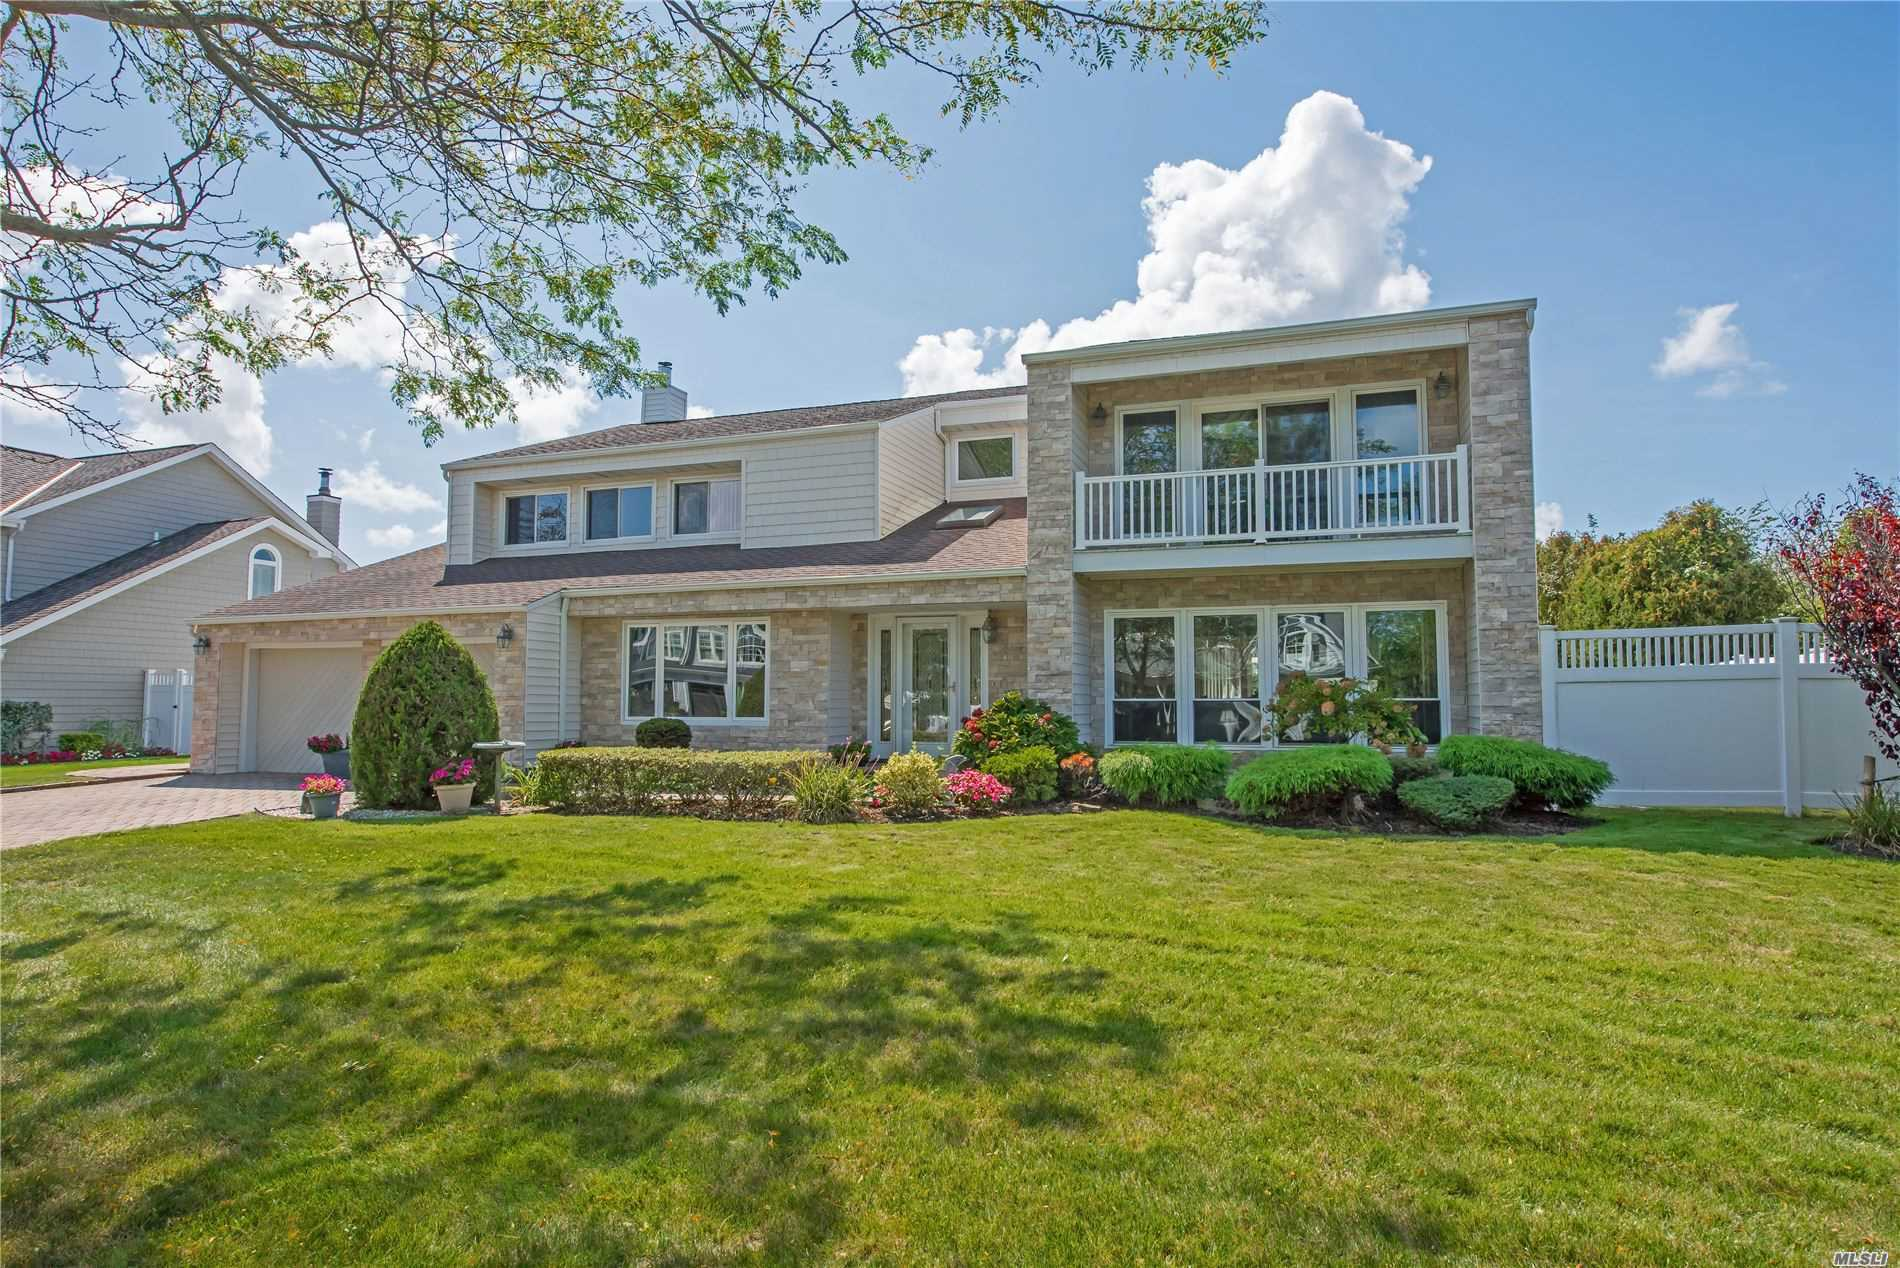 152 Pace Dr, Islip, New York